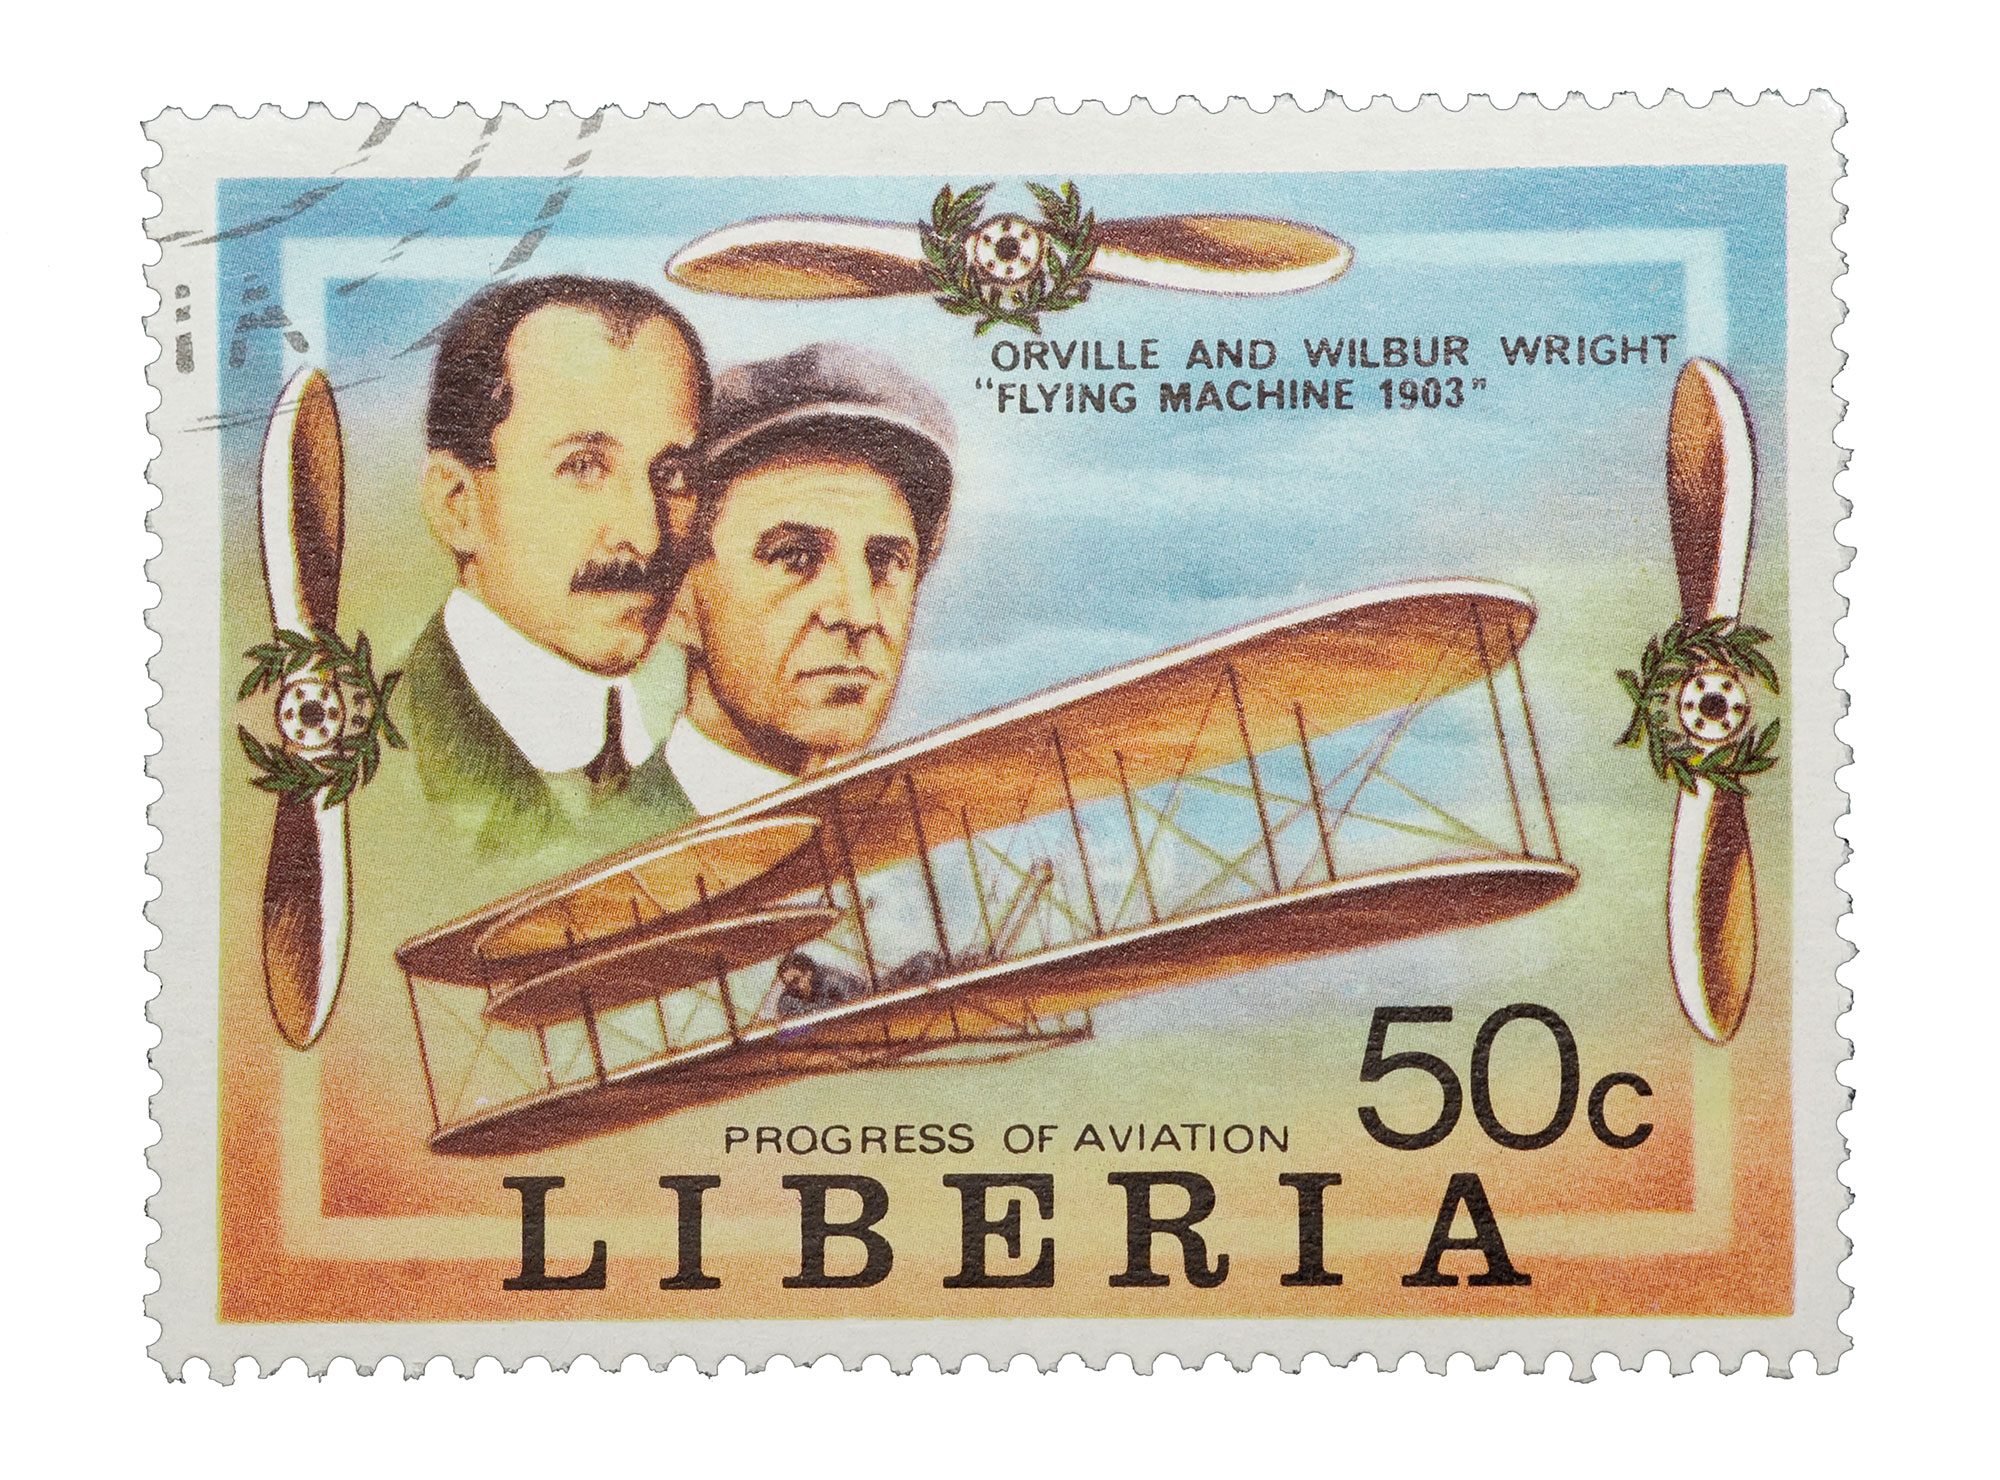 lets-honor-innovation-while-celebrating-the-wright-brothers